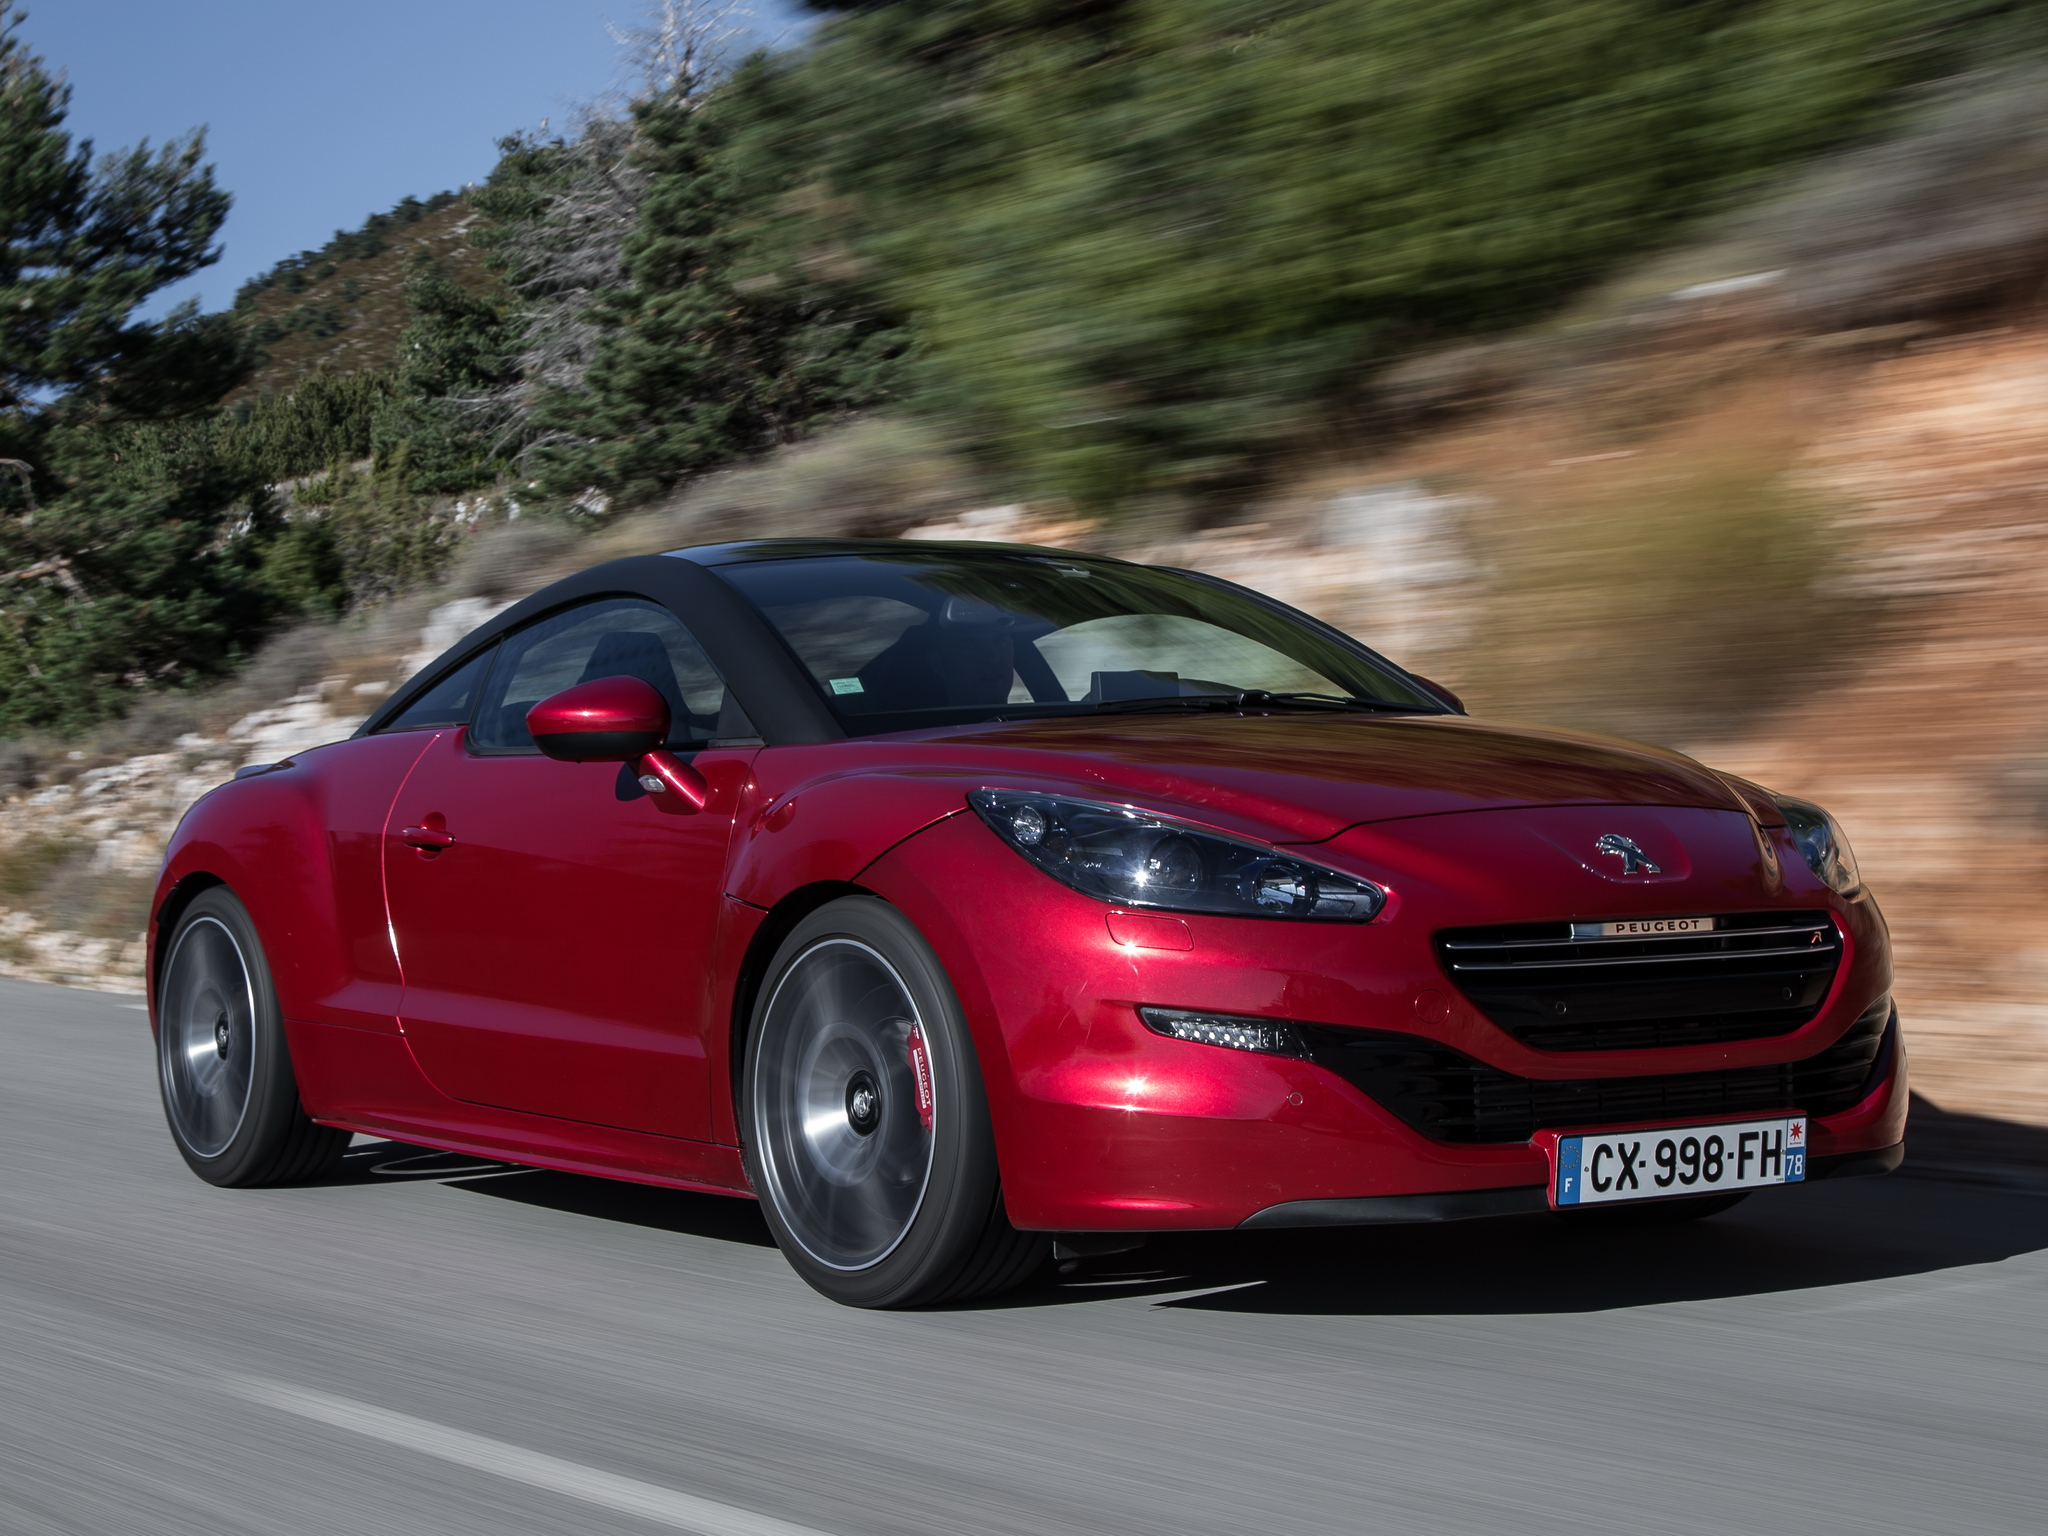 Peugeot Rcz Interieur Top Speed Run In Peugeot Rcz R Proves The French Still Make Cool